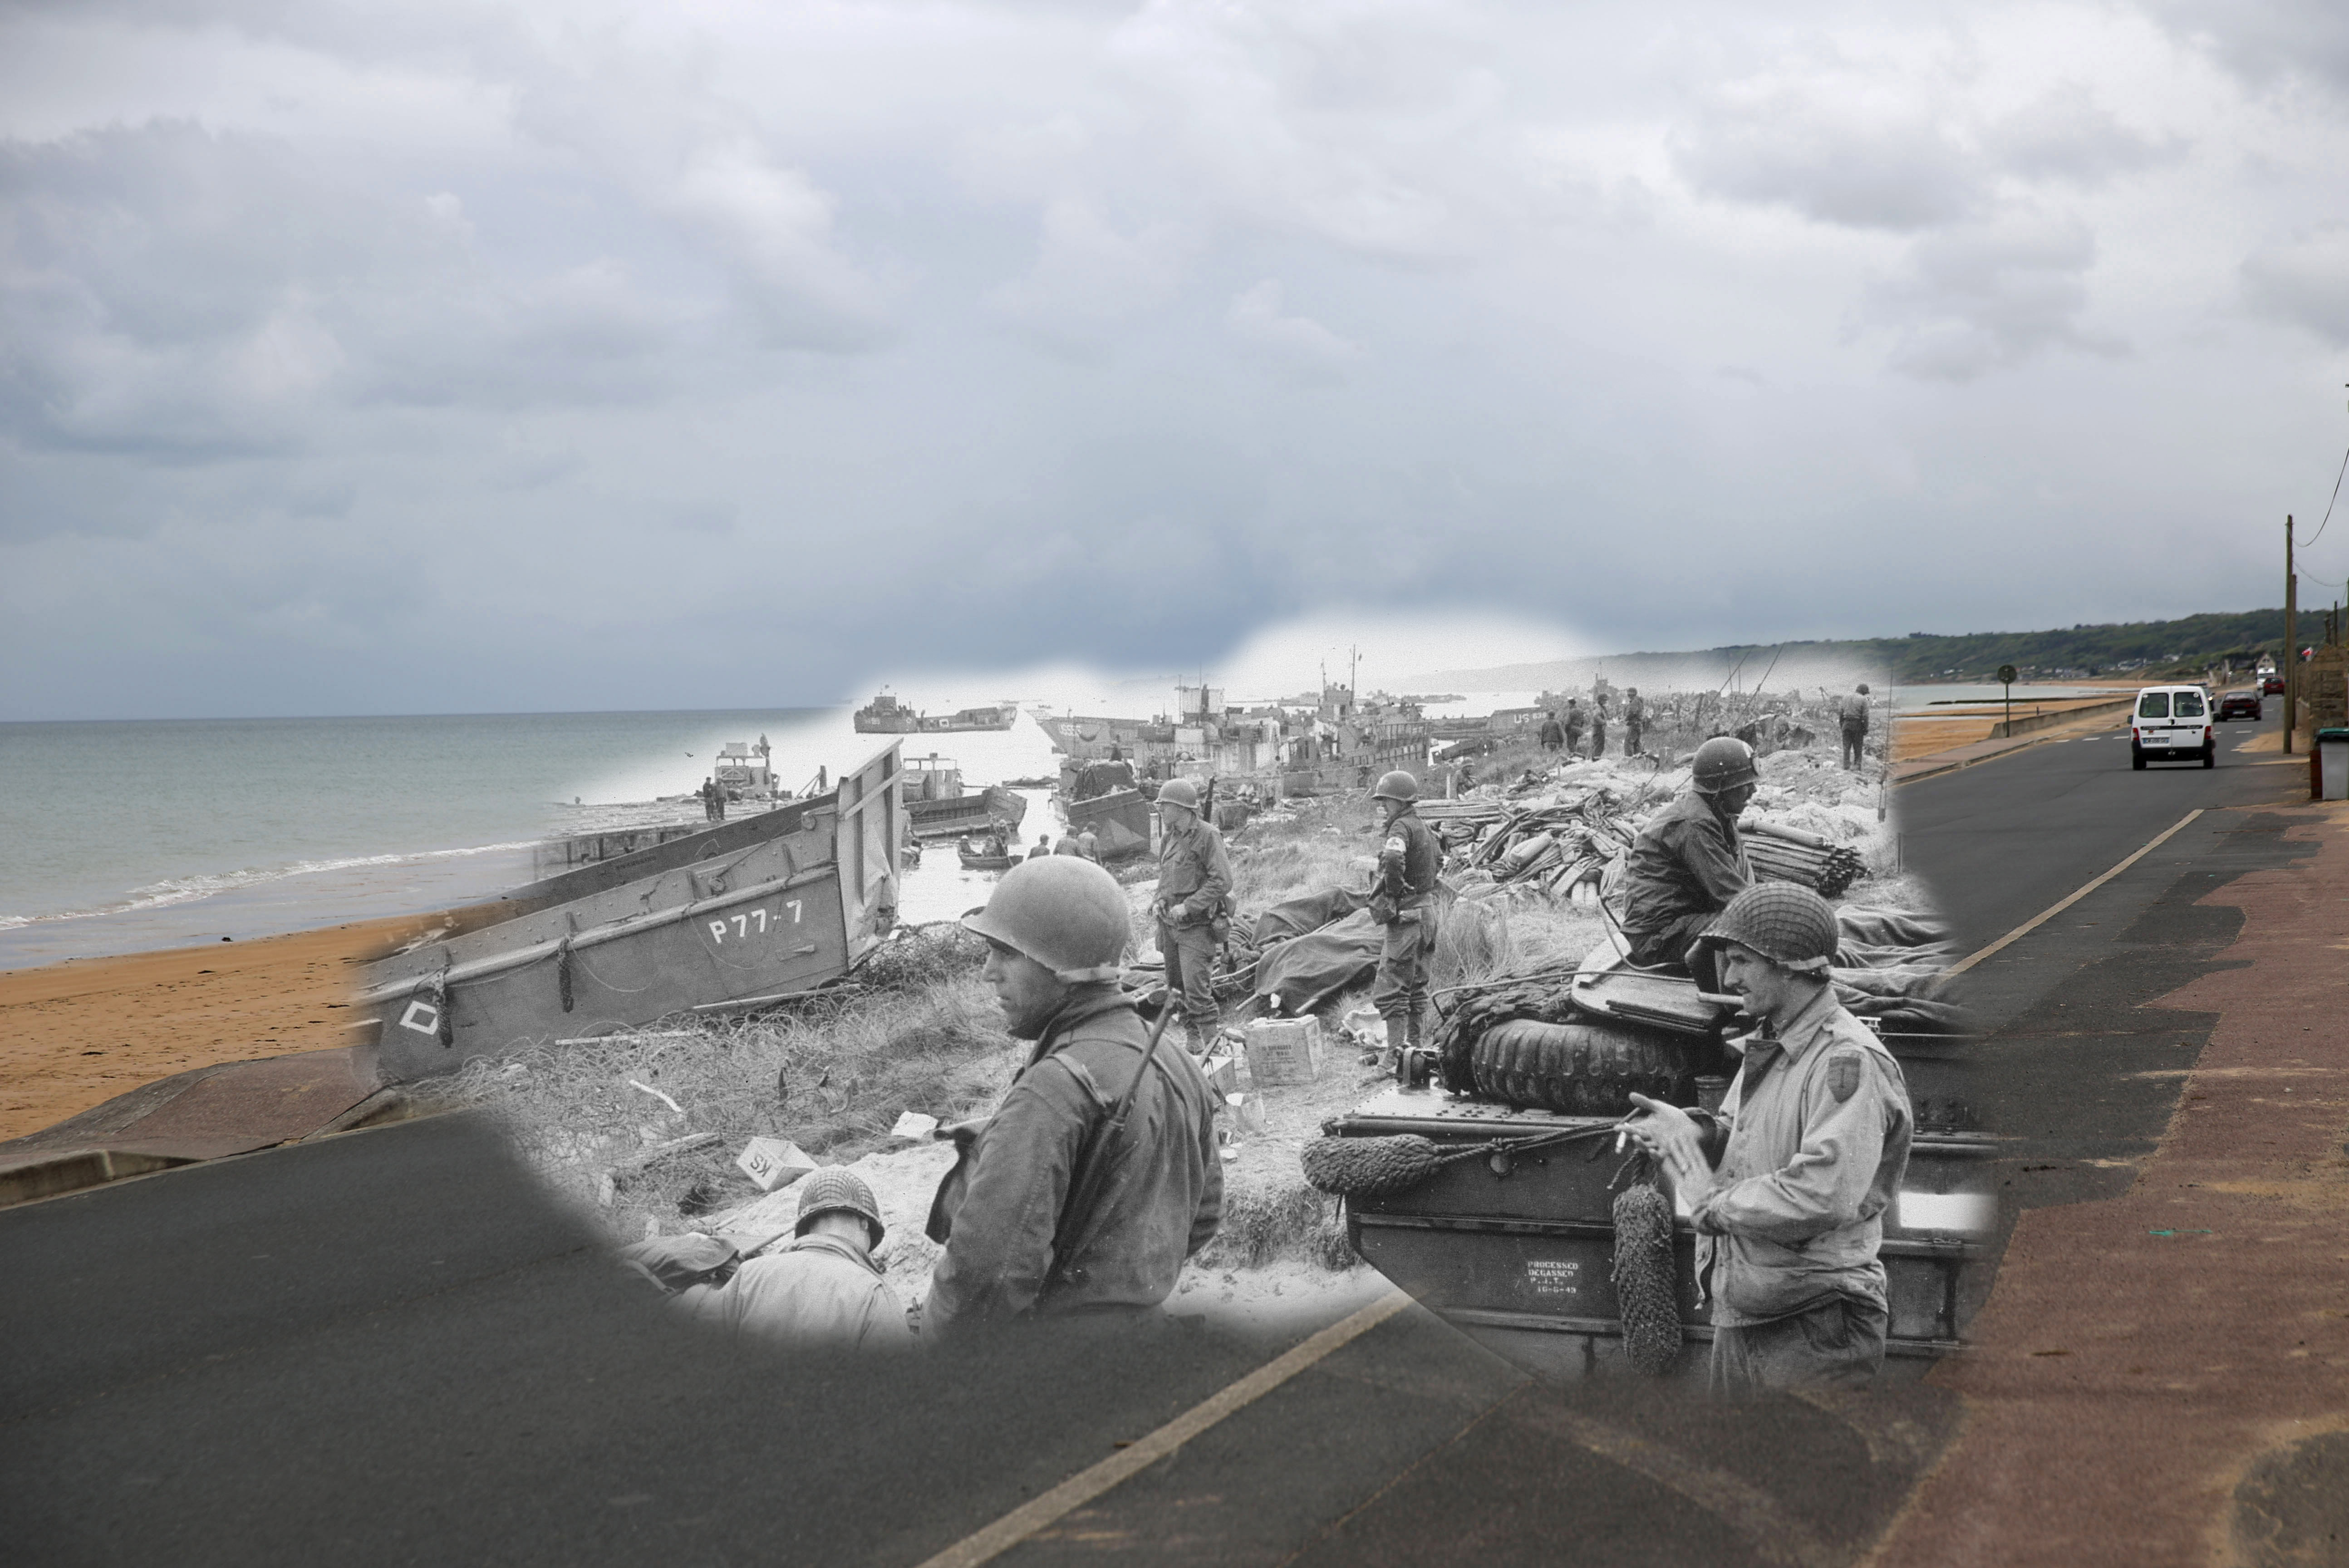 A view of Omaha Beach on May 6, 2014 near Vierville sur Mer, France. Overlay: American troops stand by with supplies on Omaha Beach after the D-day landings on June 1944.